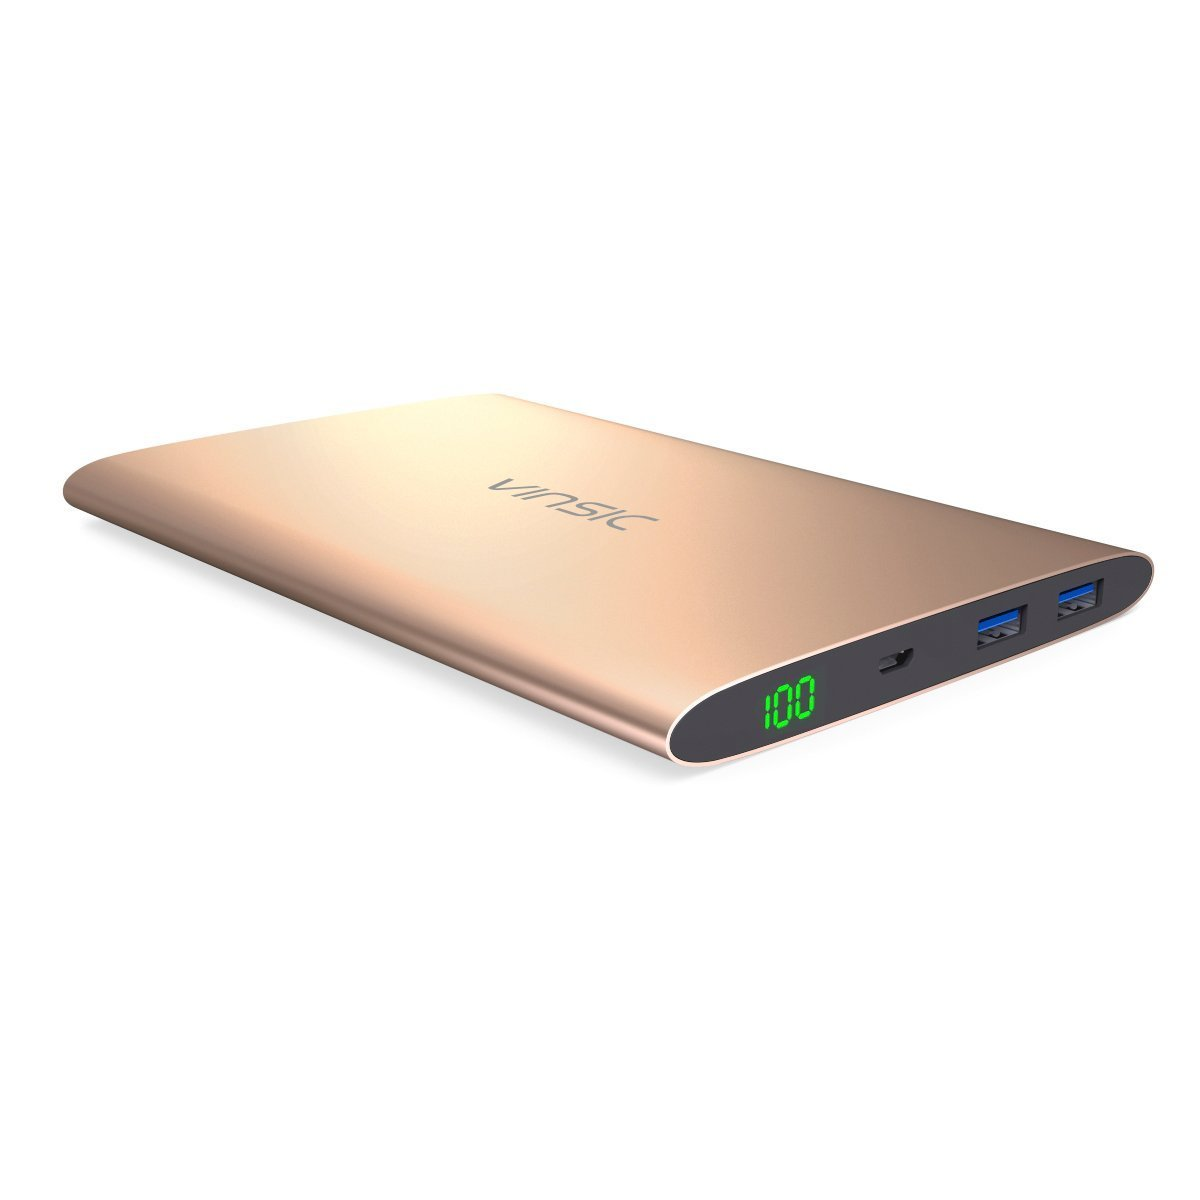 Power Bank, Vinsic 20000mAh Power Bank, Dual USB Port External Mobile Battery Charger Pack for iPhone, iPad, Samsung Galaxy, Cell Phones and Tablets.